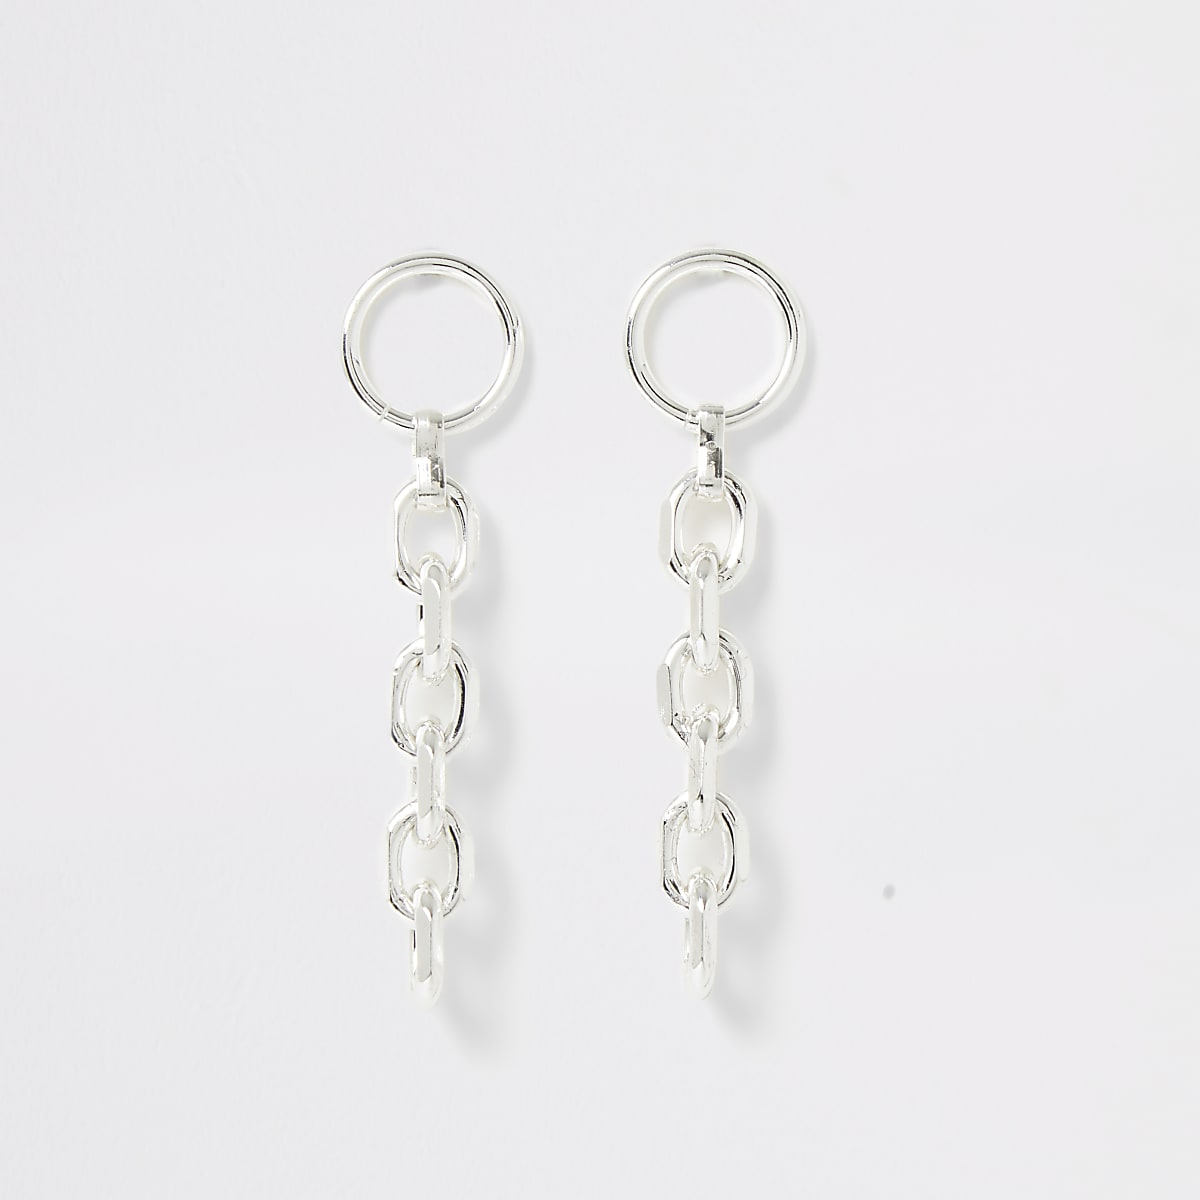 Silver colour chain drop earrings